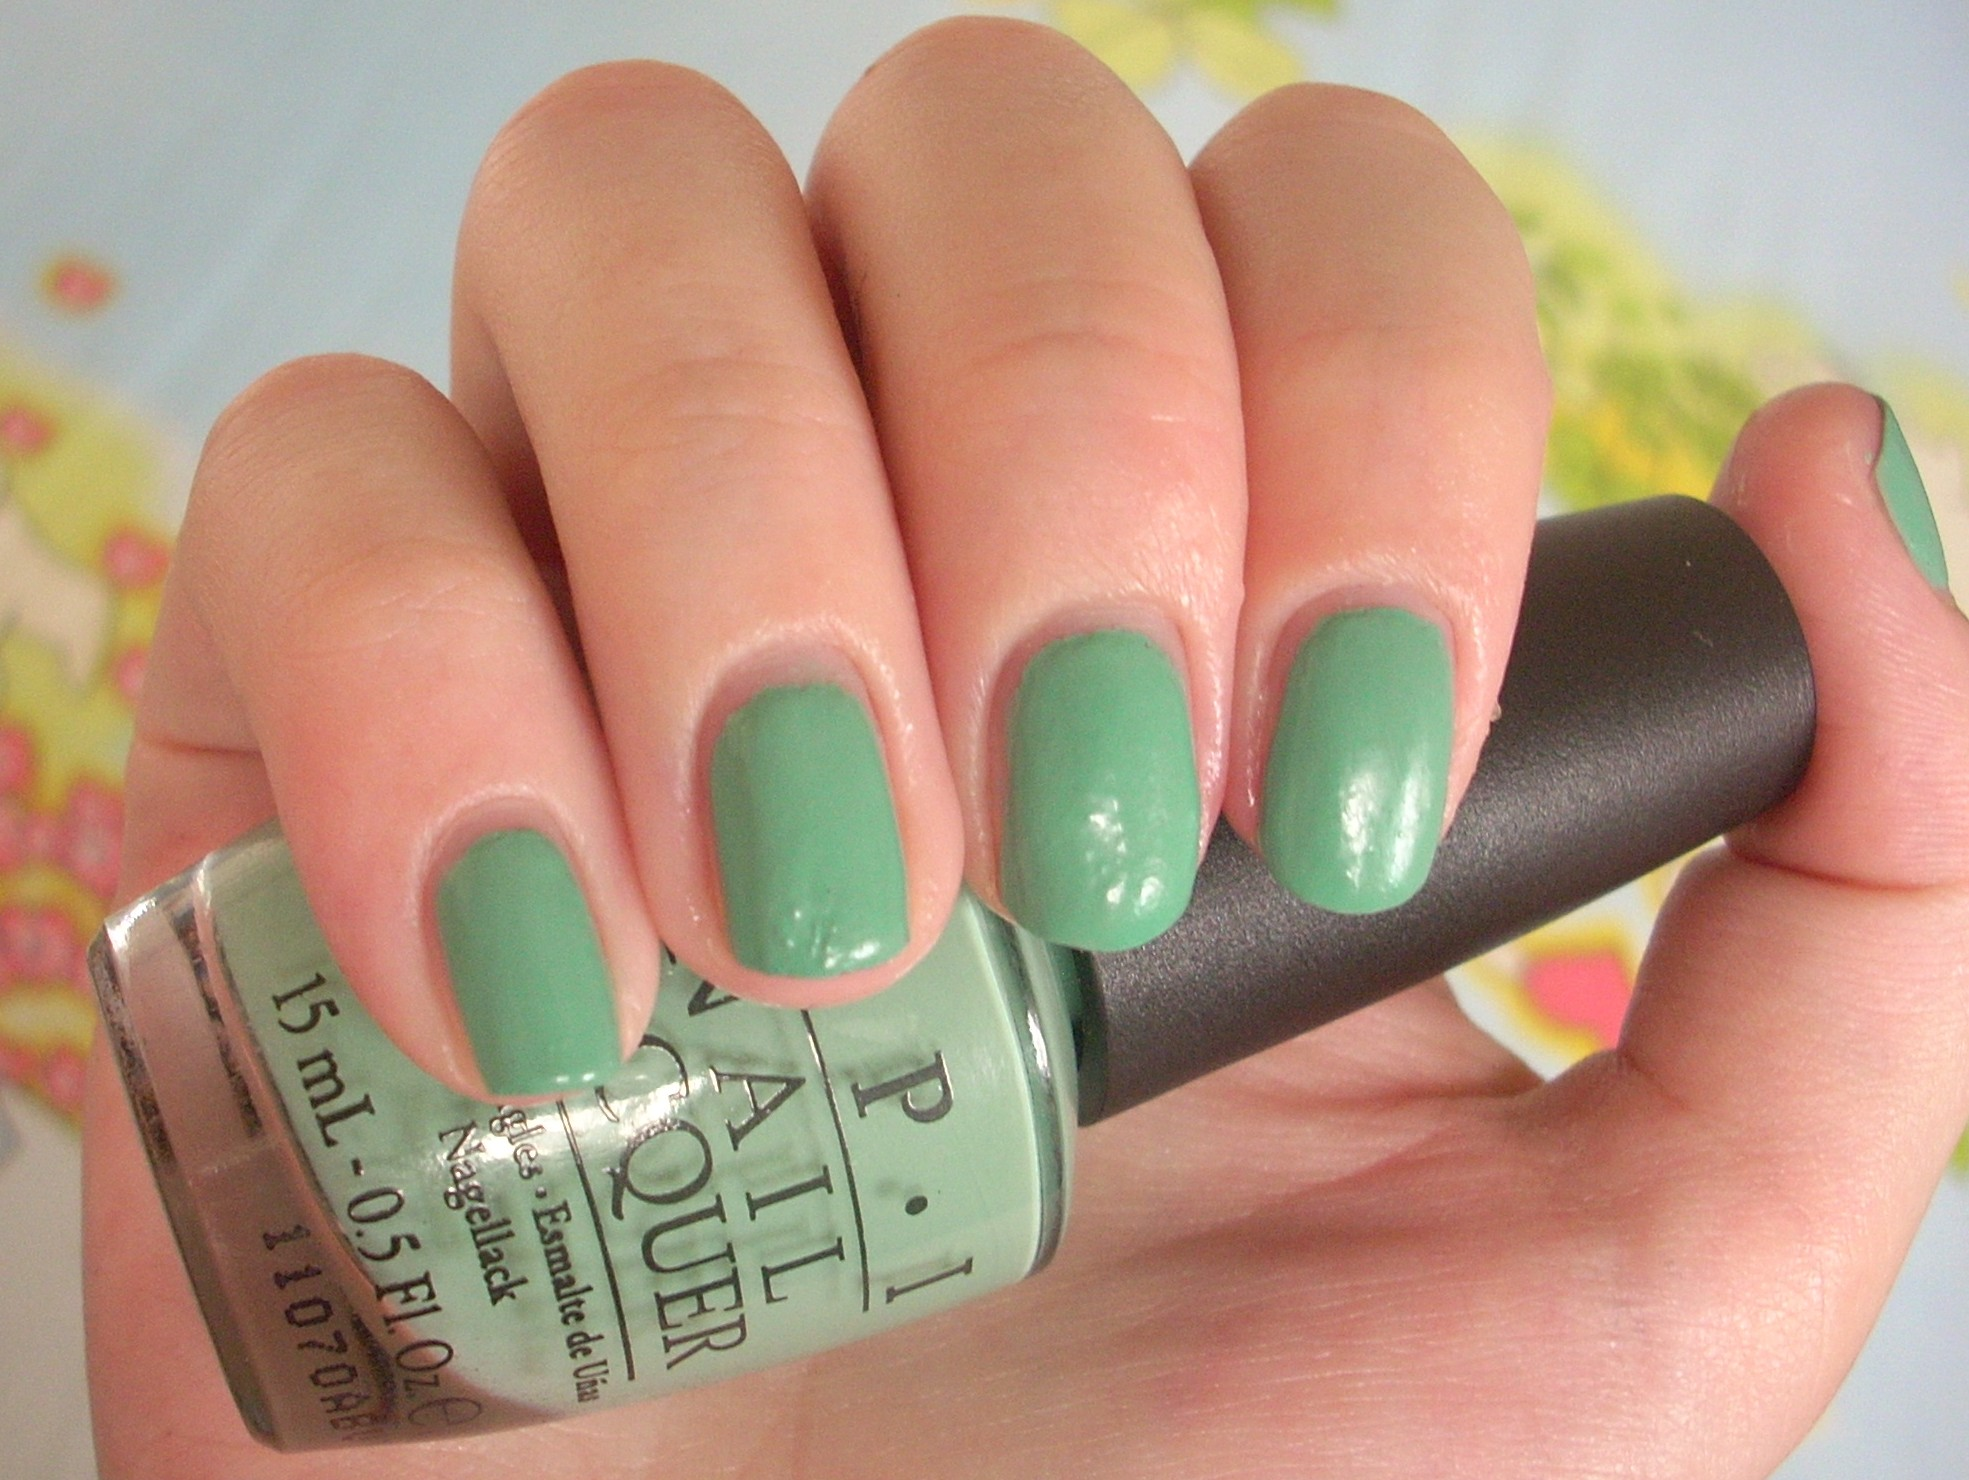 OPI Mermaids Tears Nail Polish Review